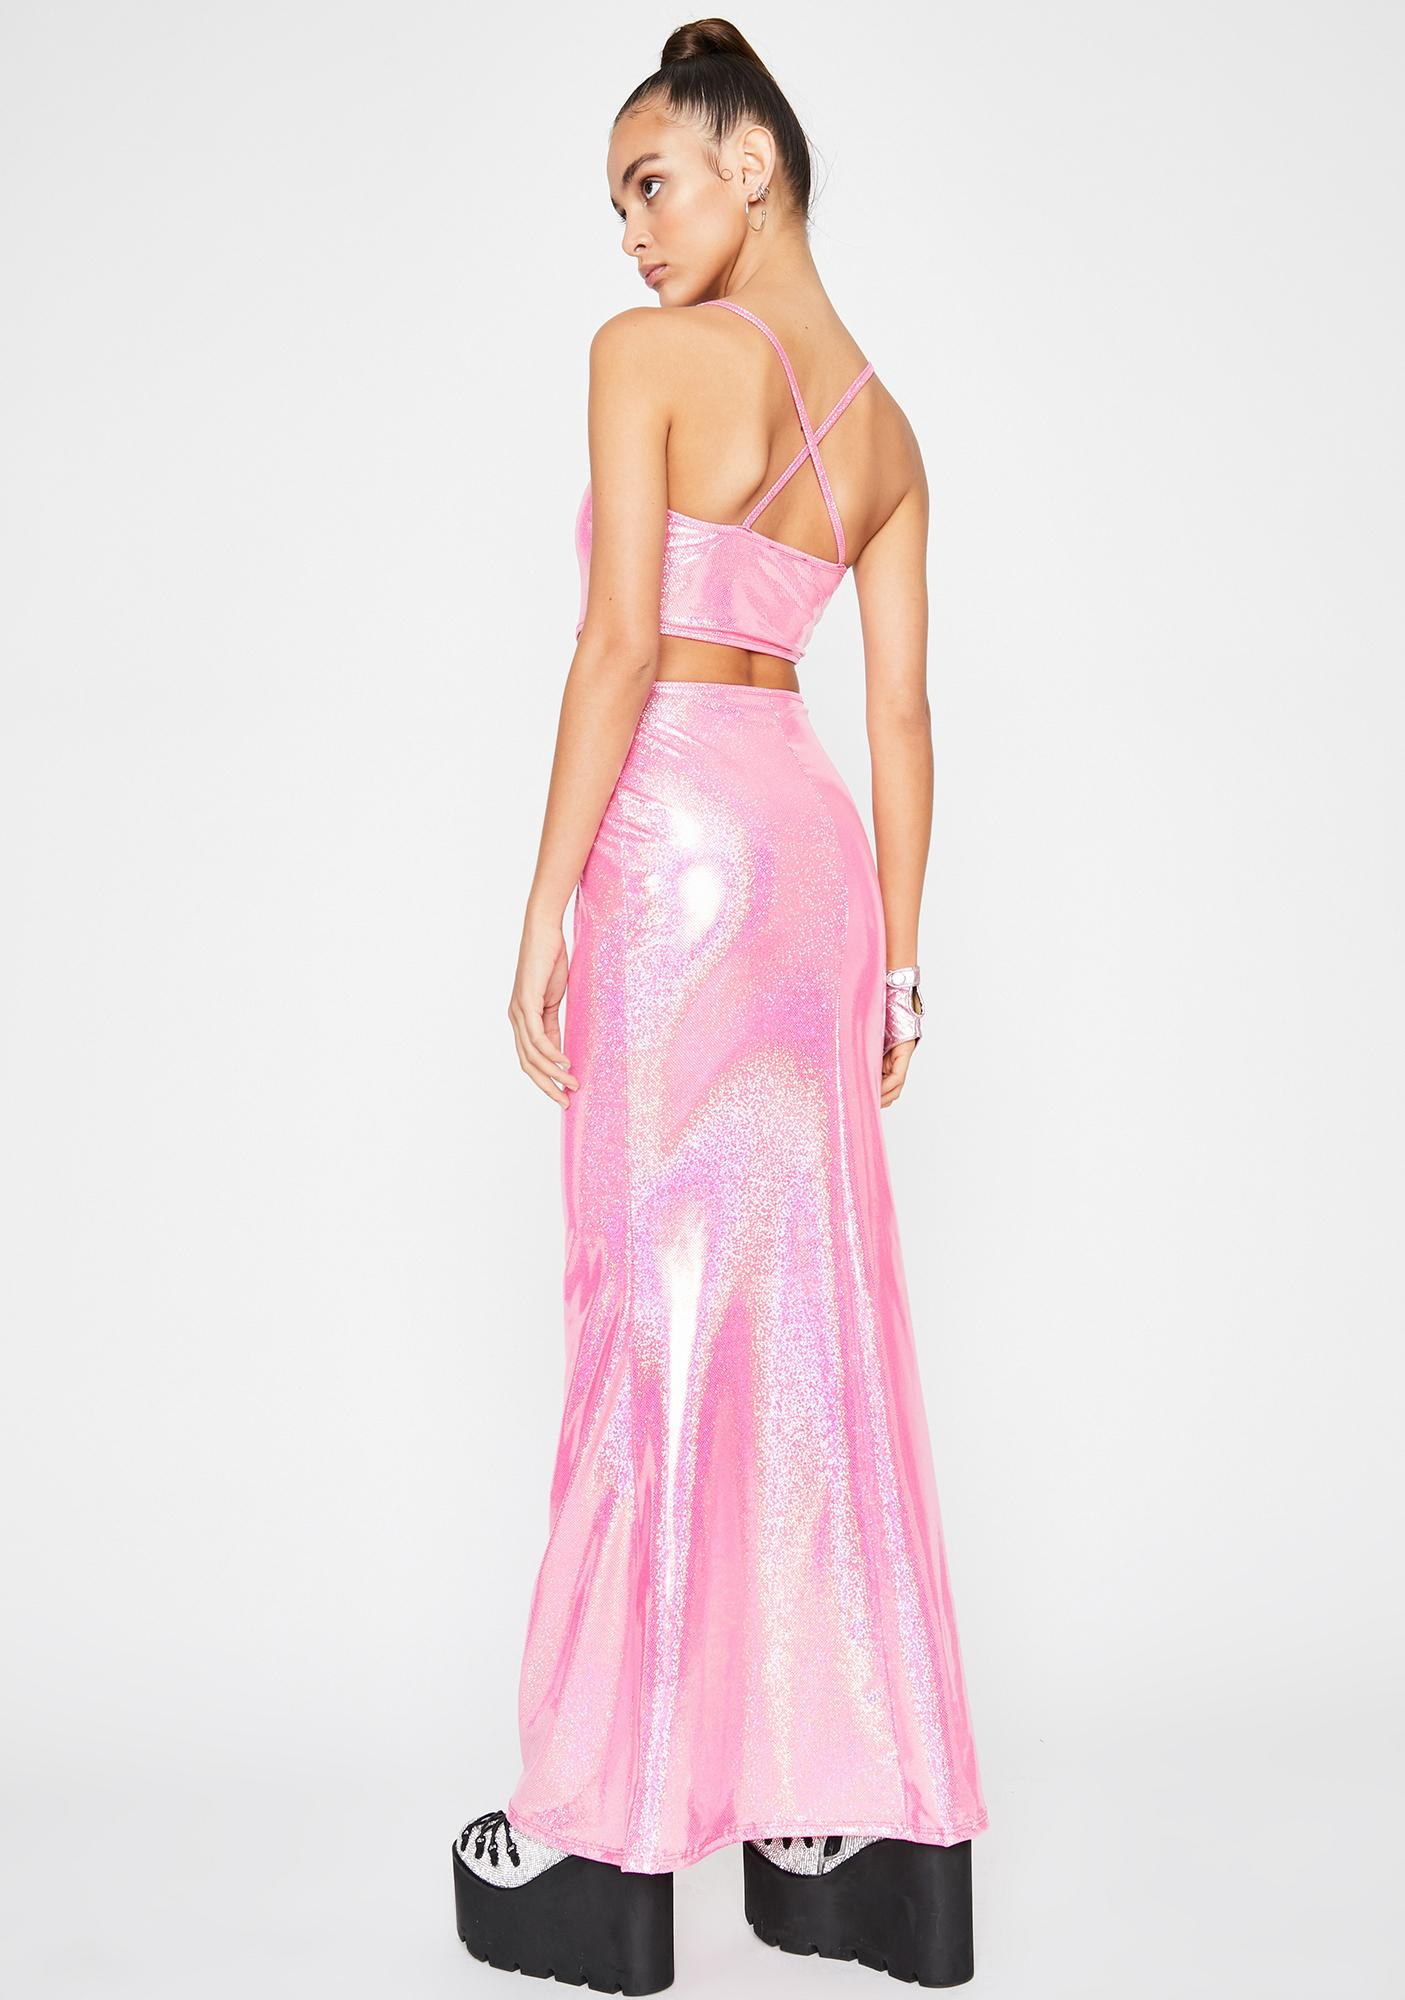 Sweet Mermaid Bliss Holographic Dress